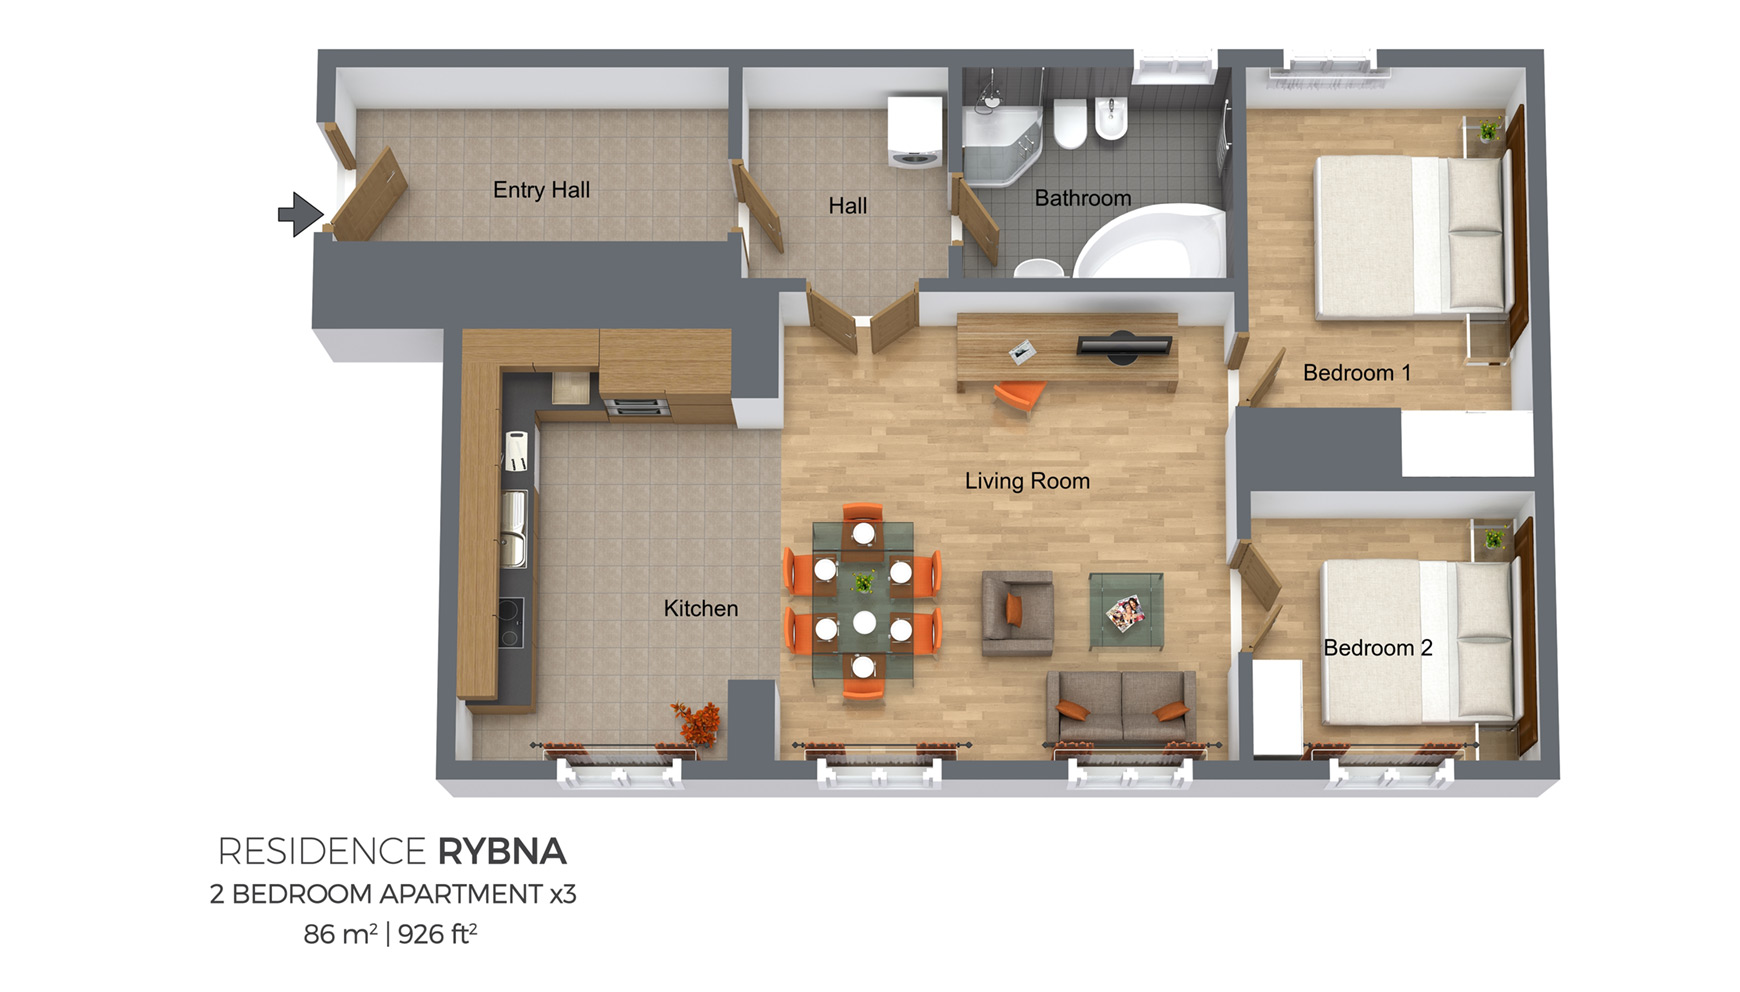 Two Bedroom Apartment Type 3